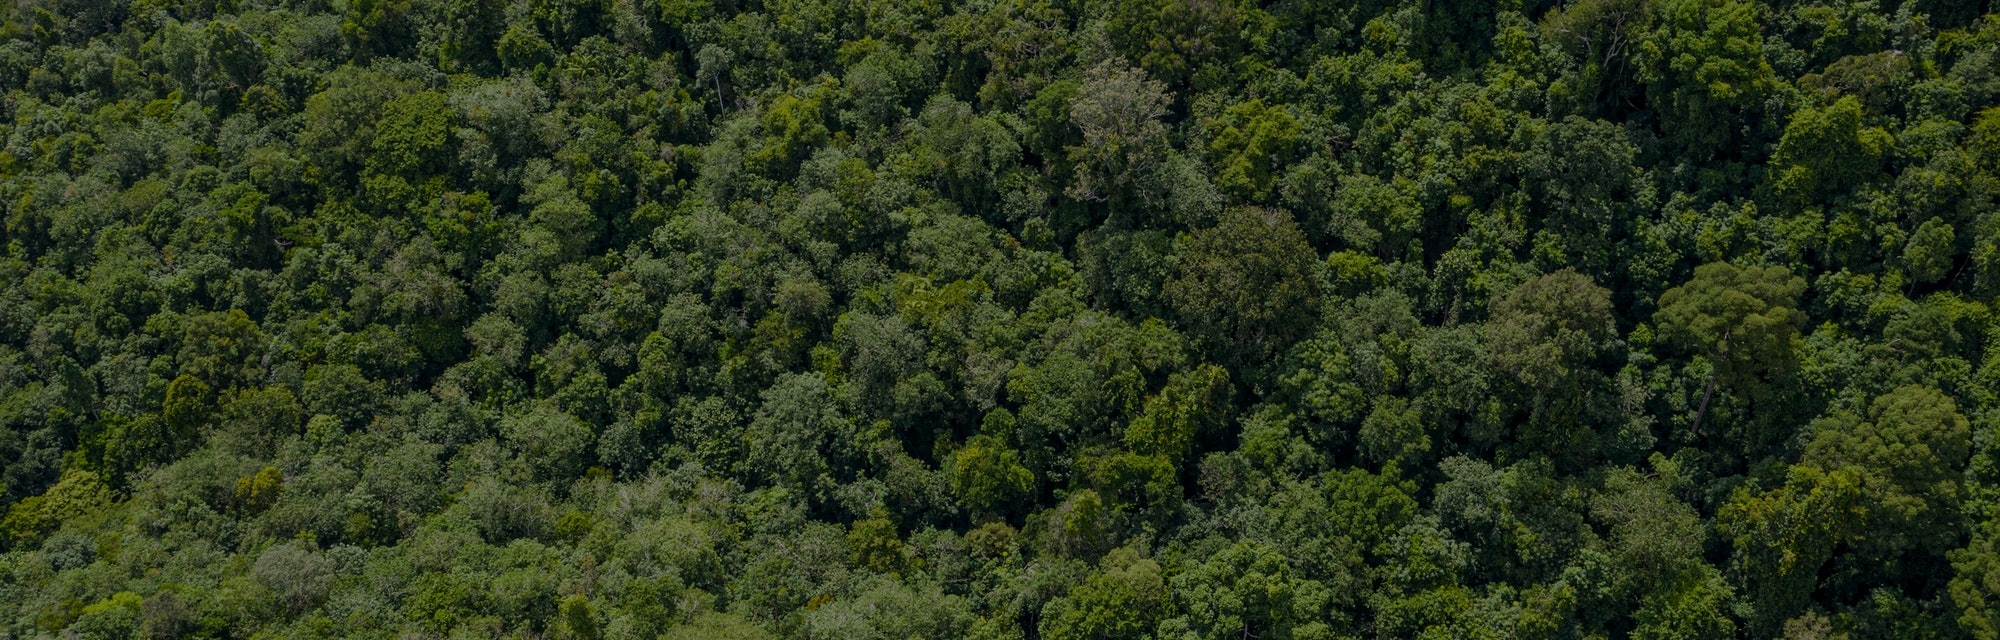 Aerial view of a lush green forest or woodland